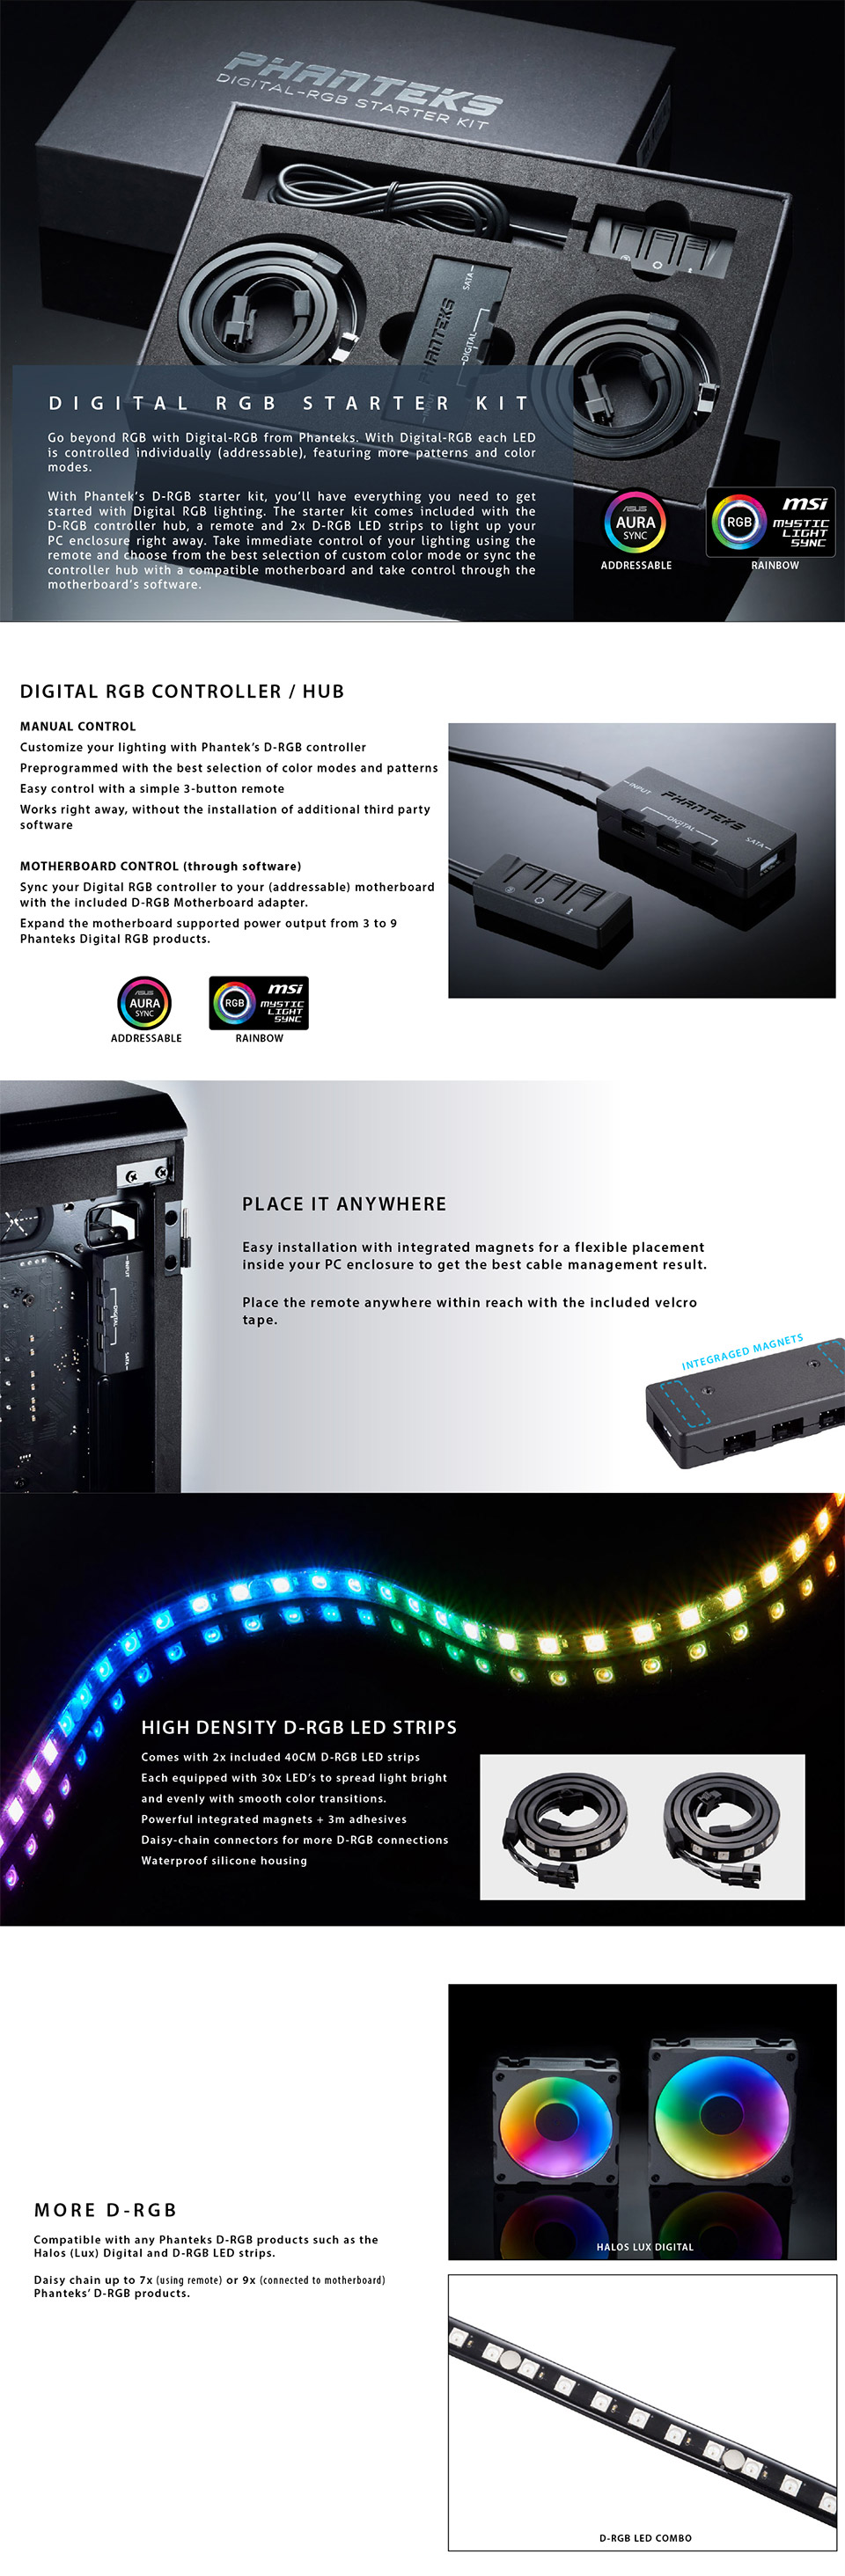 Phanteks Digital RGB LED Starter Kit